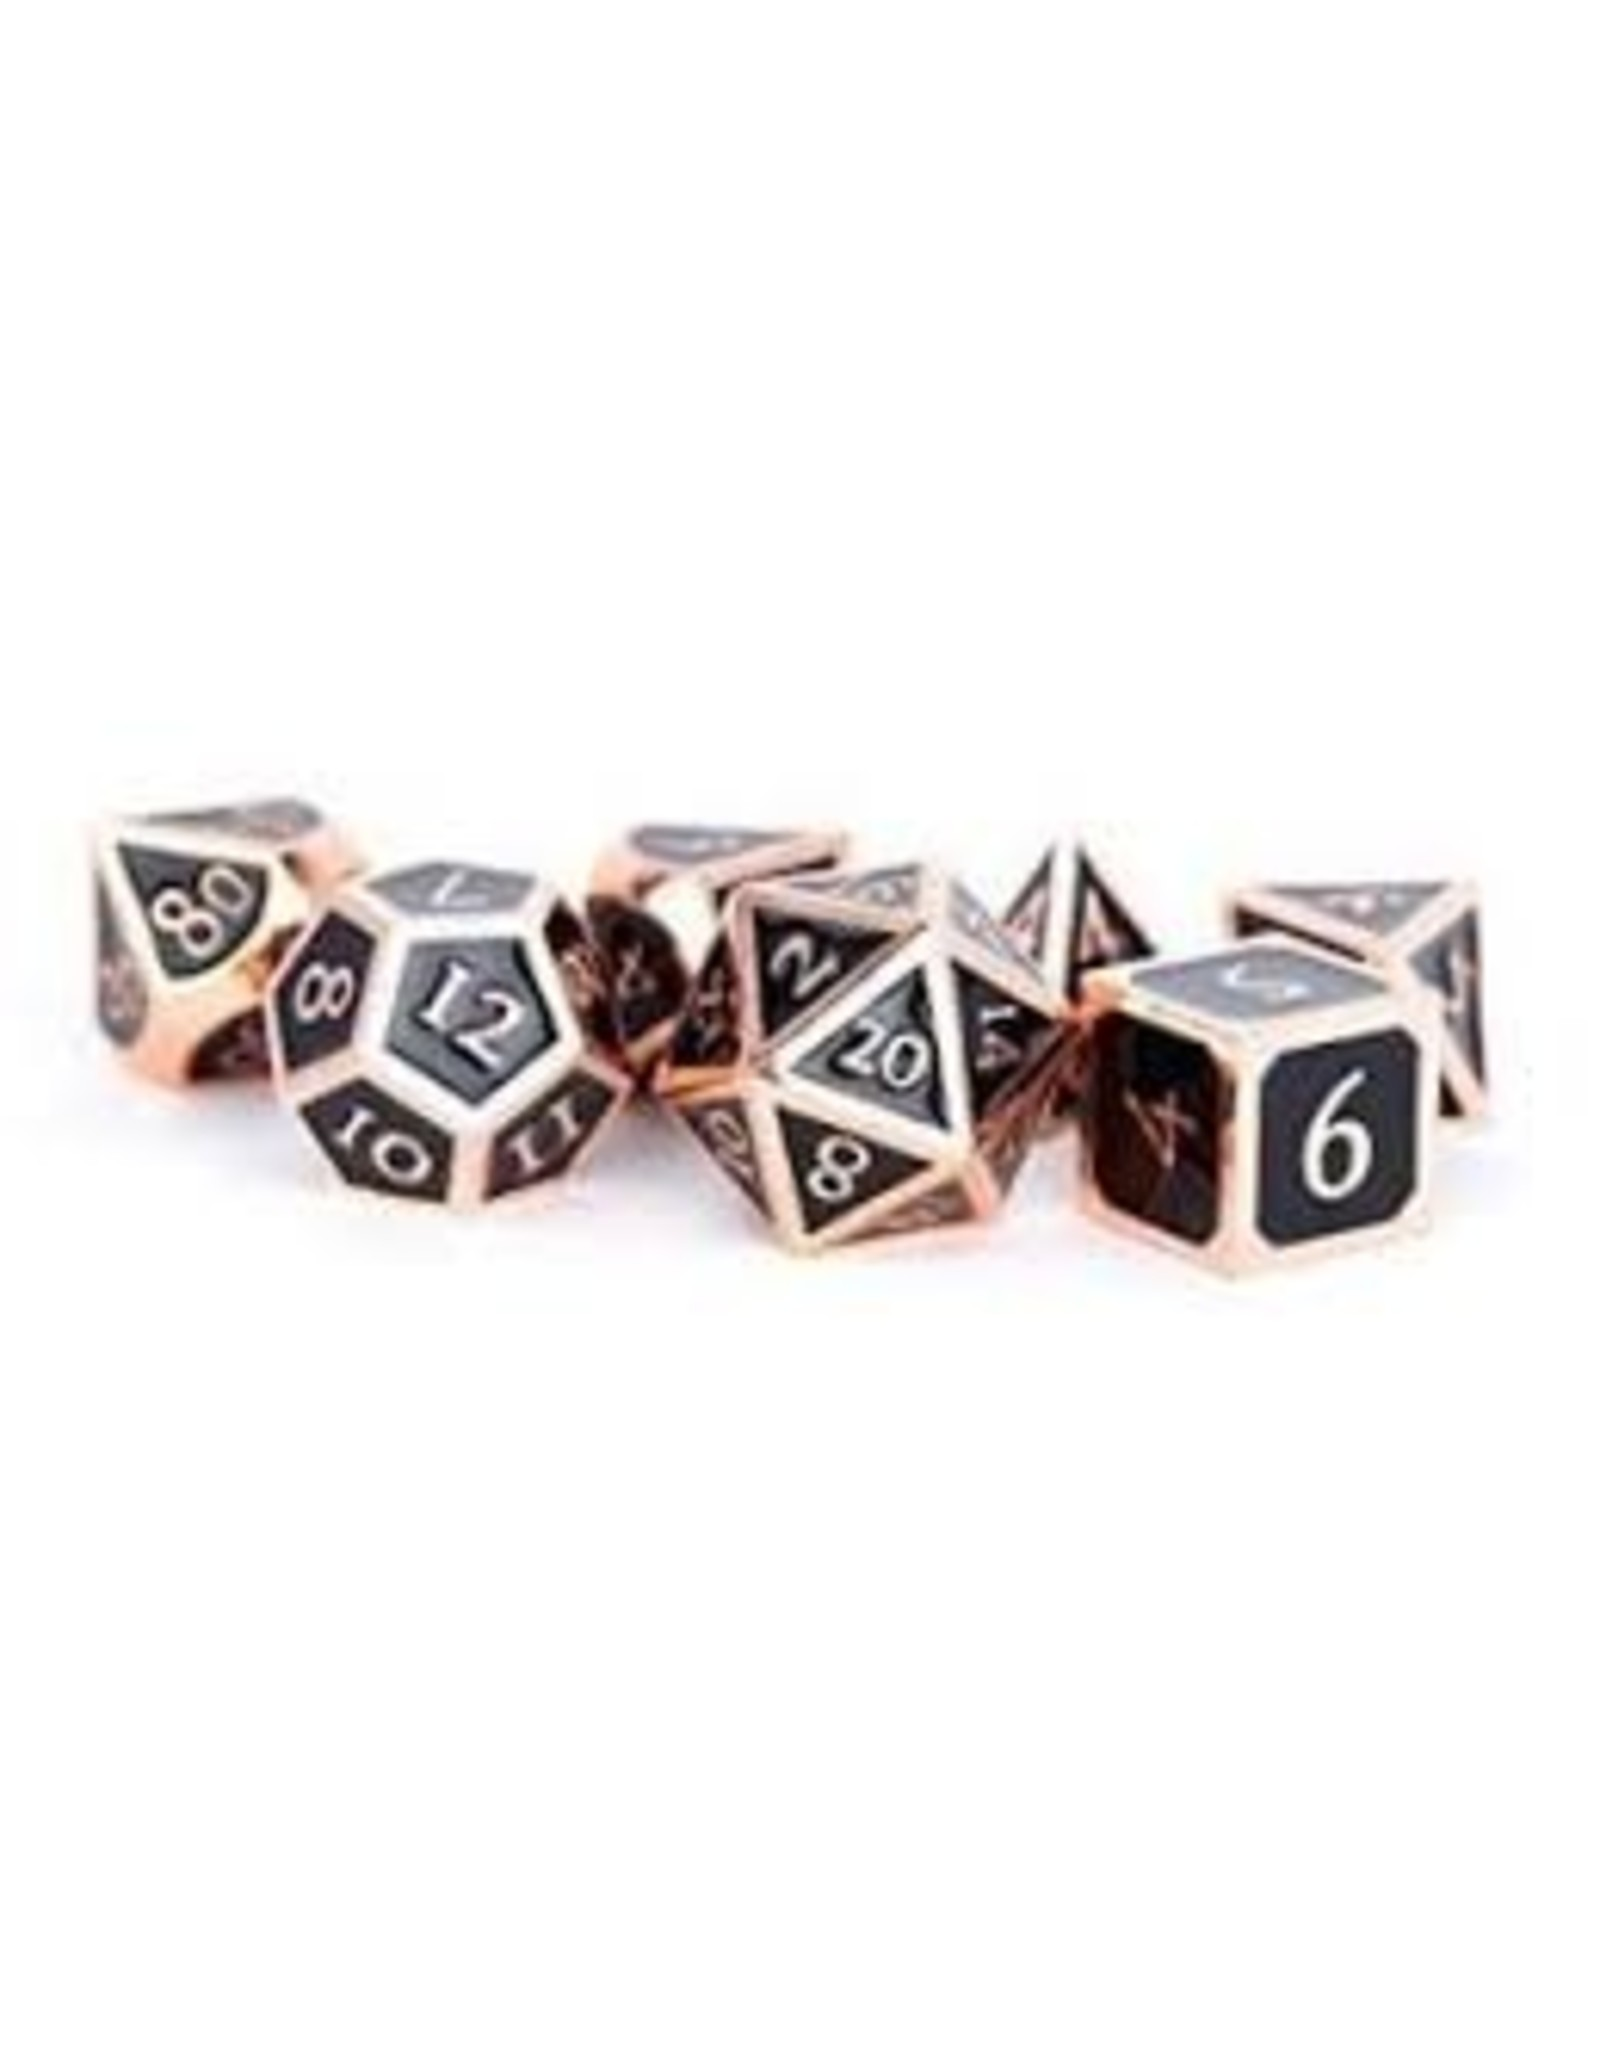 Dice 7-set: 16mm: BKCPcp Metal Enamel